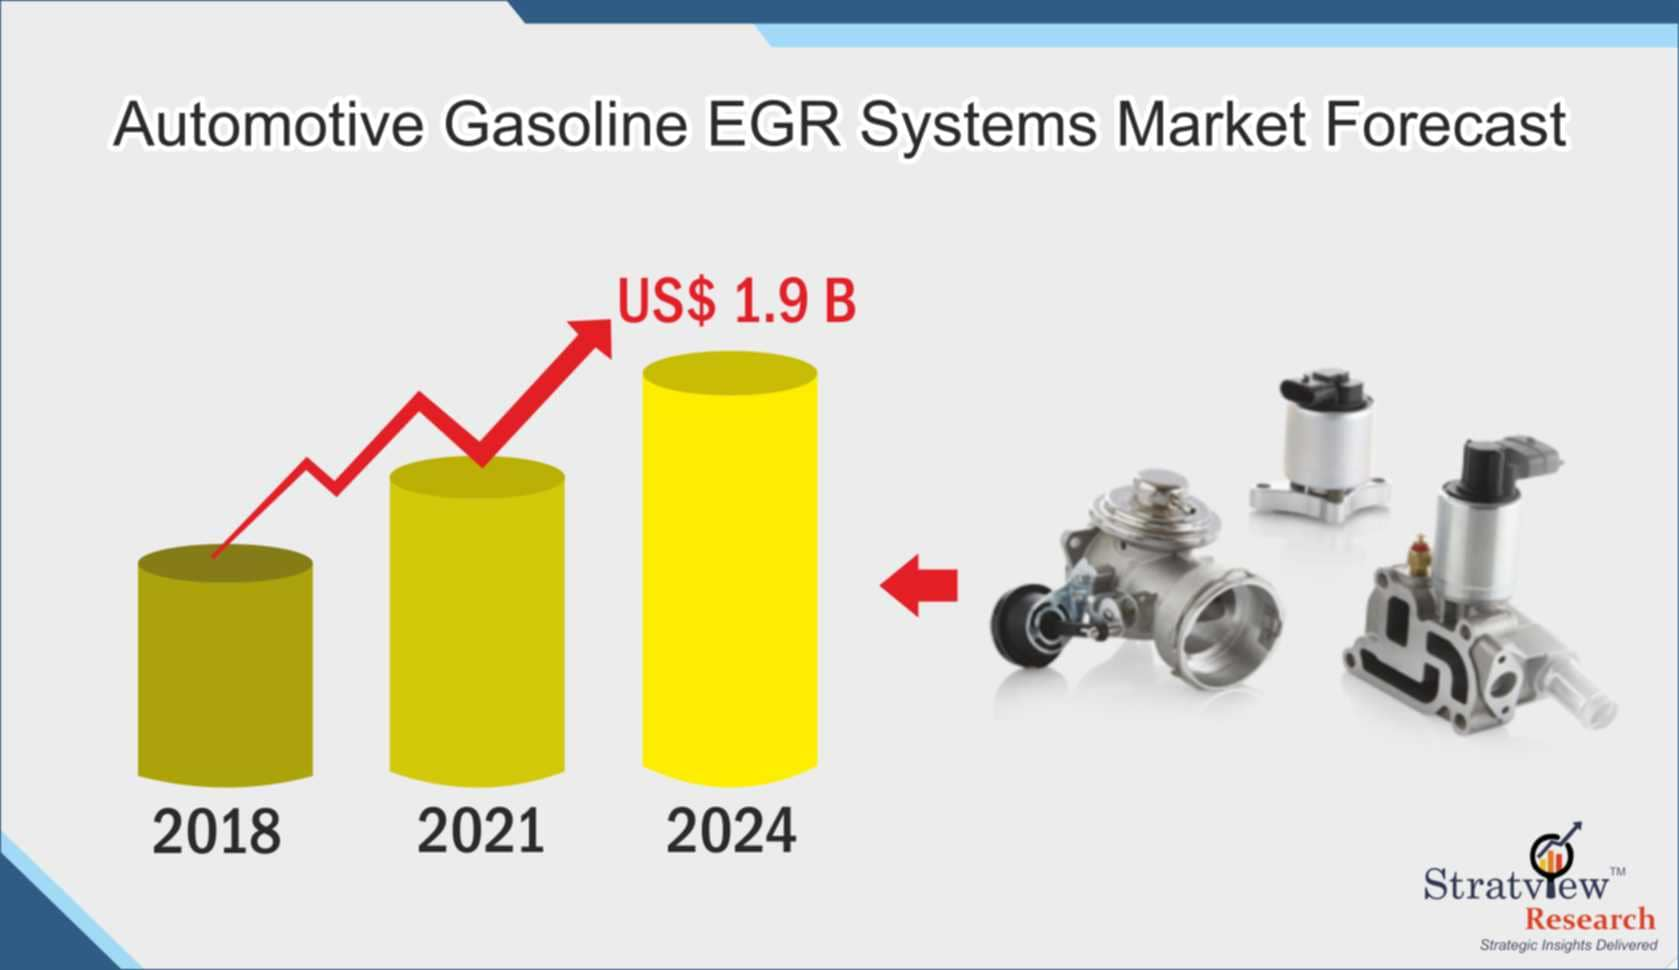 Automotive Gasoline EGR System Market Forecast